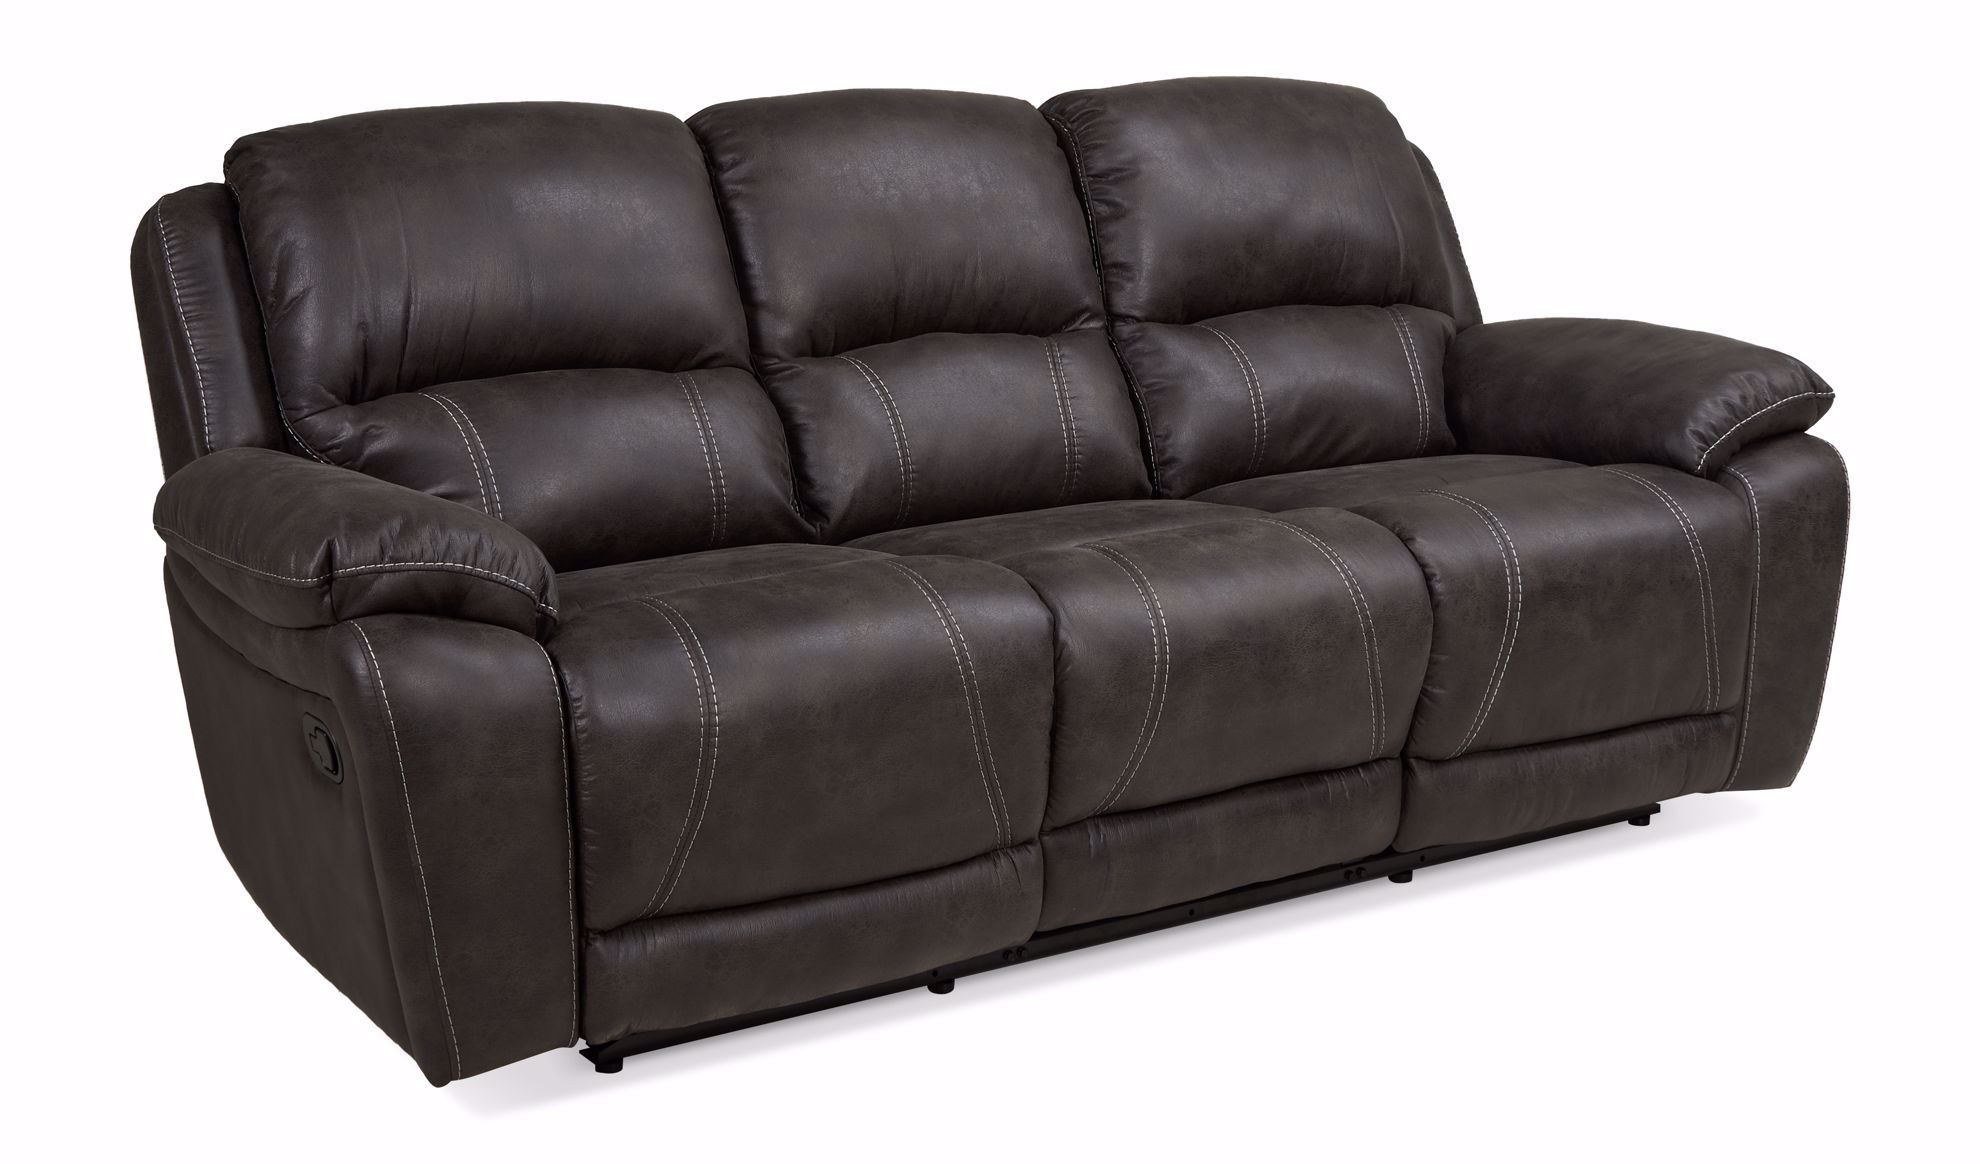 Picture of Natalie Granite Reclining Sofa